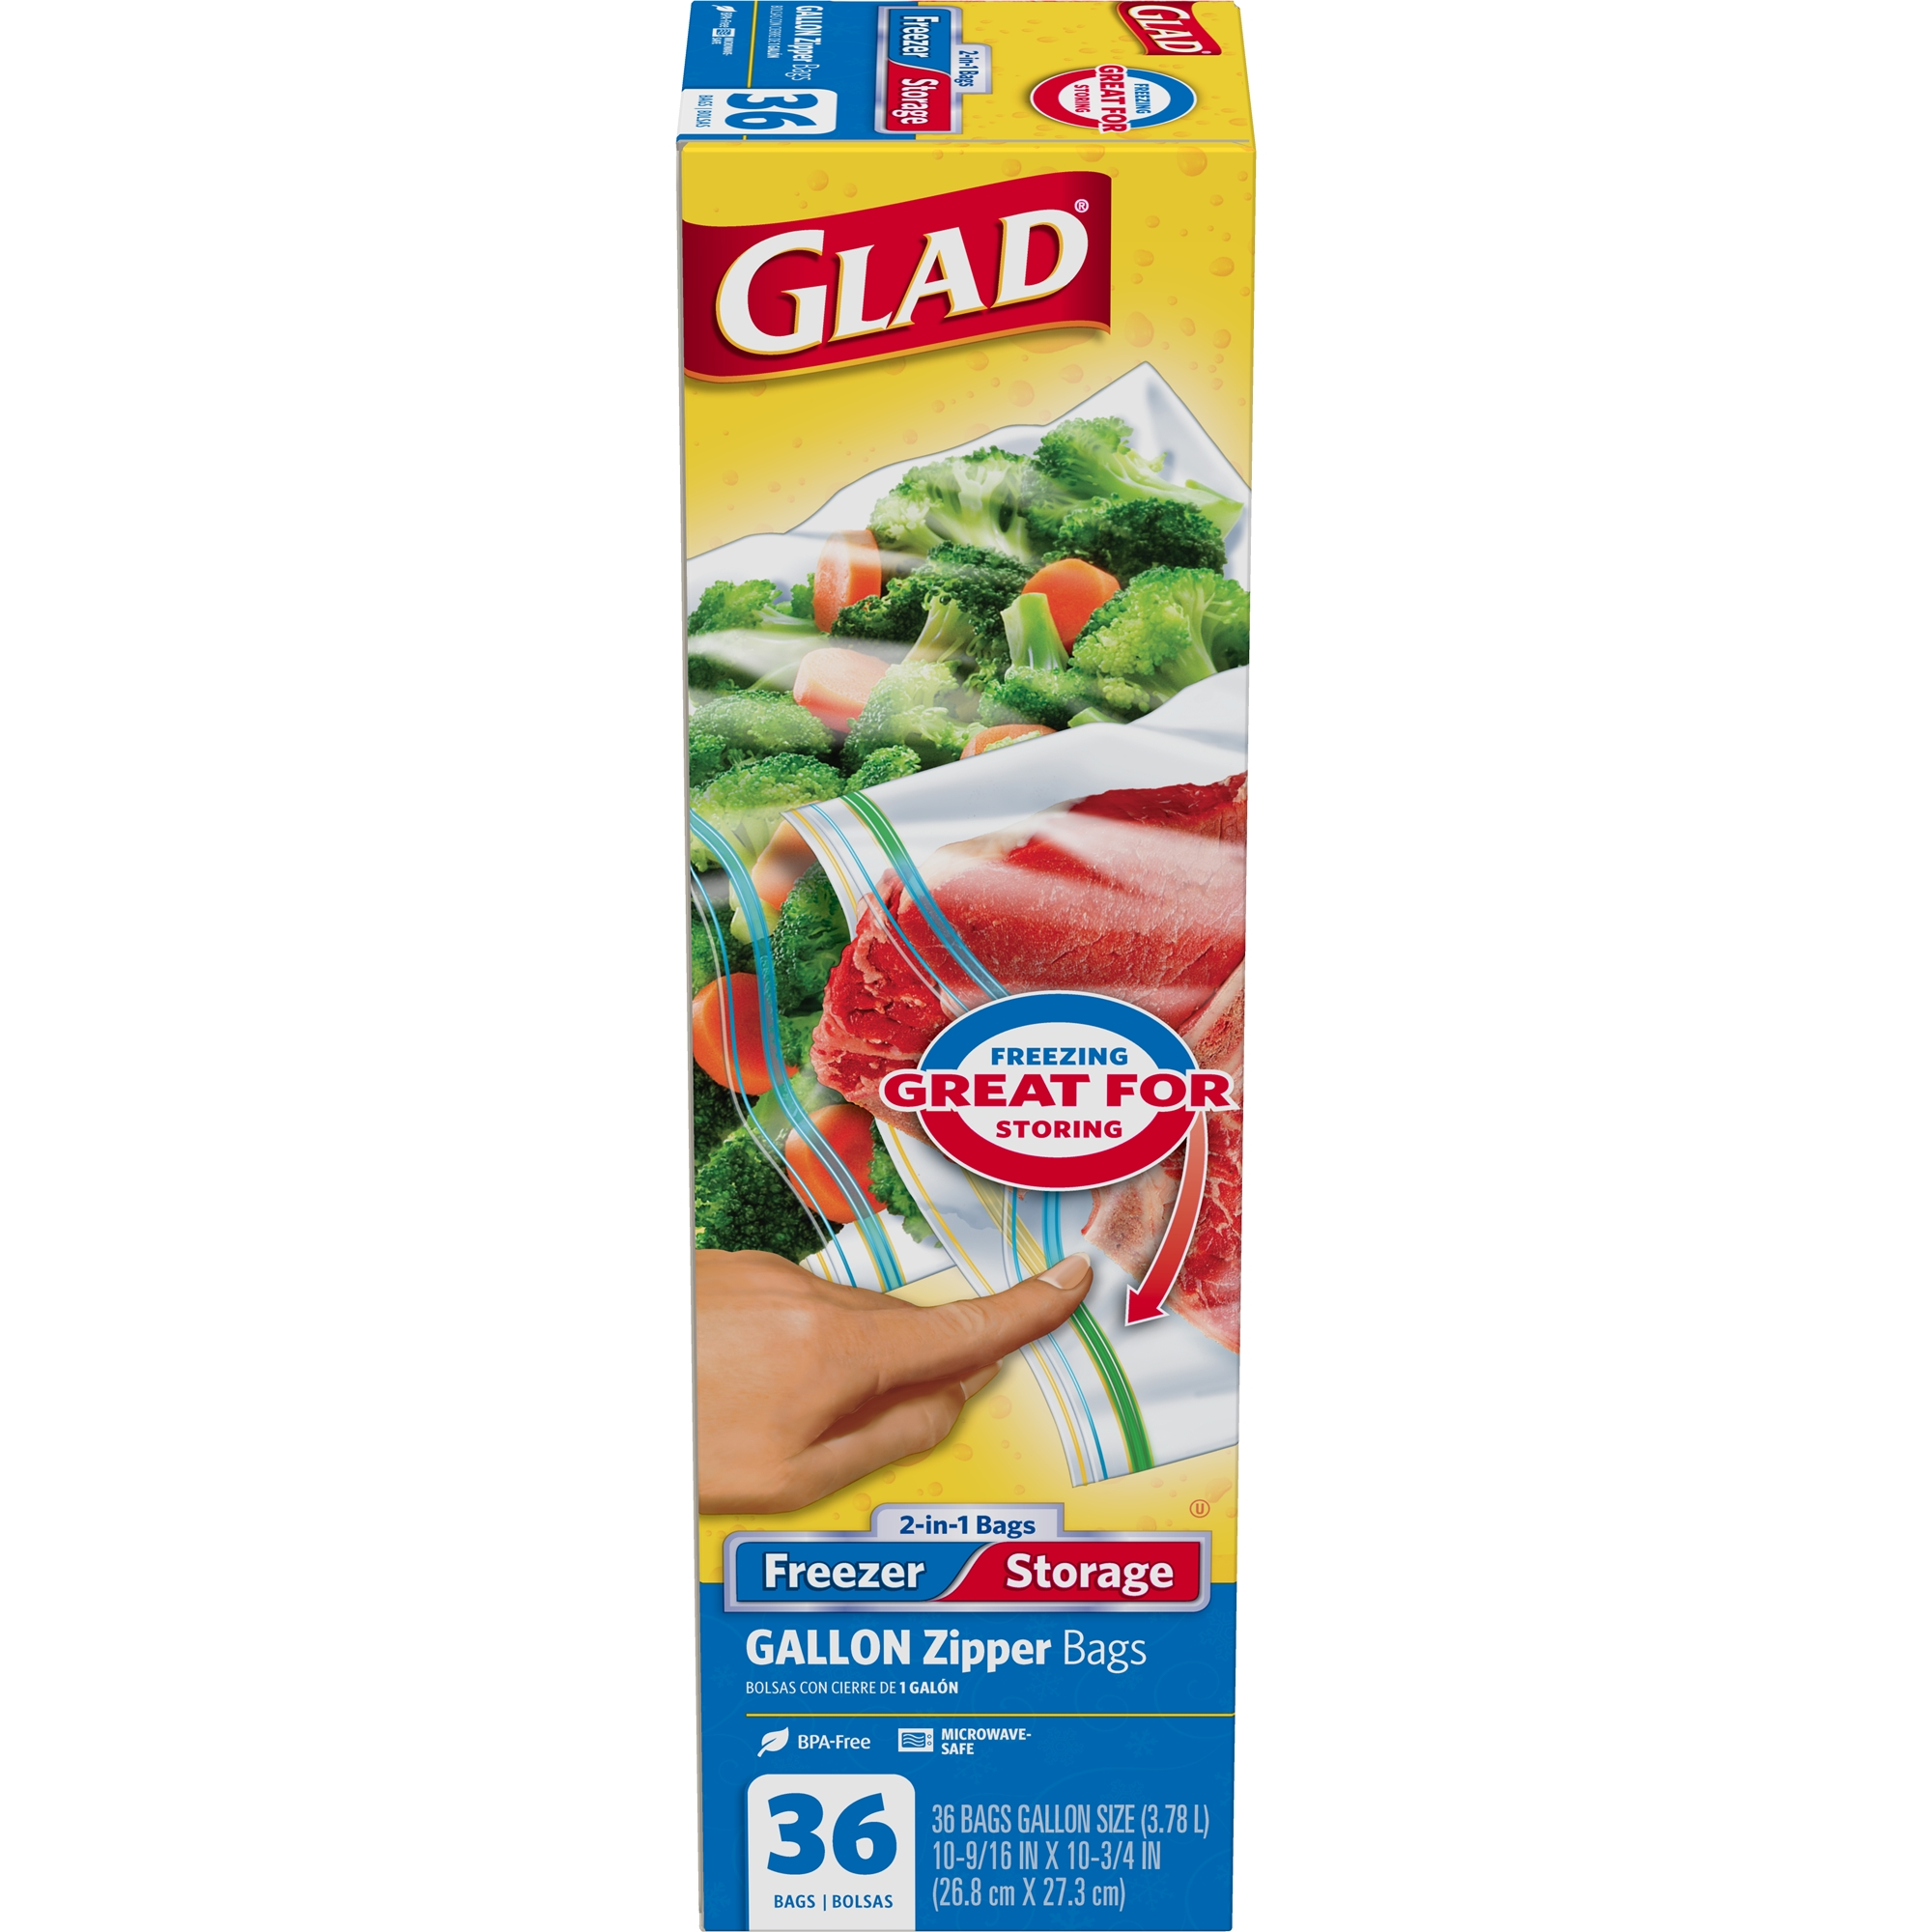 Glad Food Storage and Freezer 2 in 1 Zipper Bags - Gallon - 36 ct